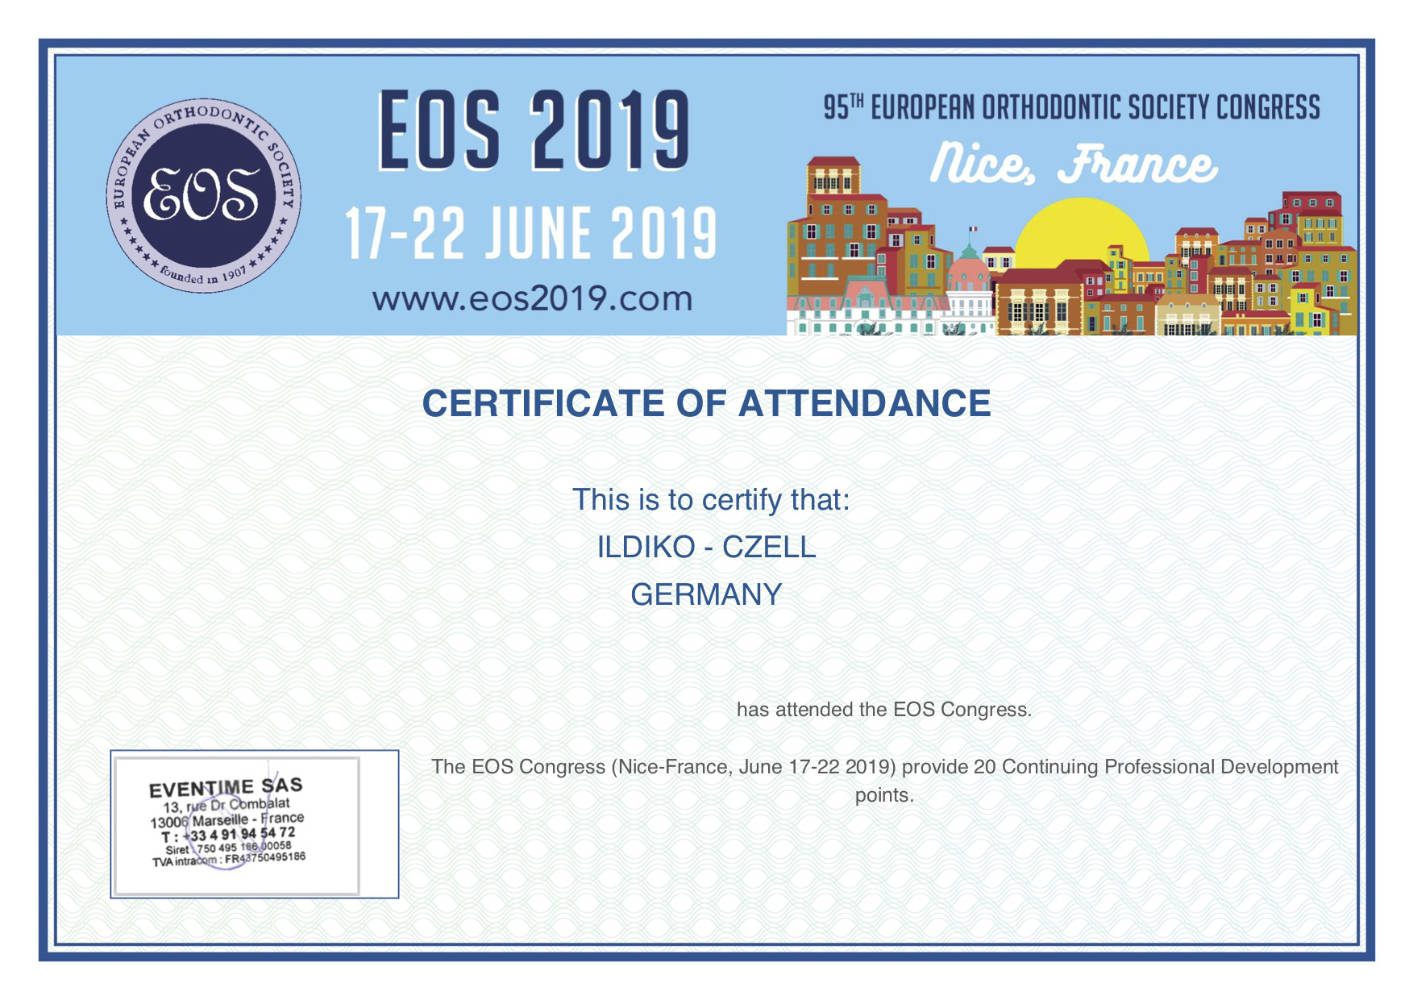 2019 06 17 22 IC 95 Congress of the European Orthodontic Society EOS